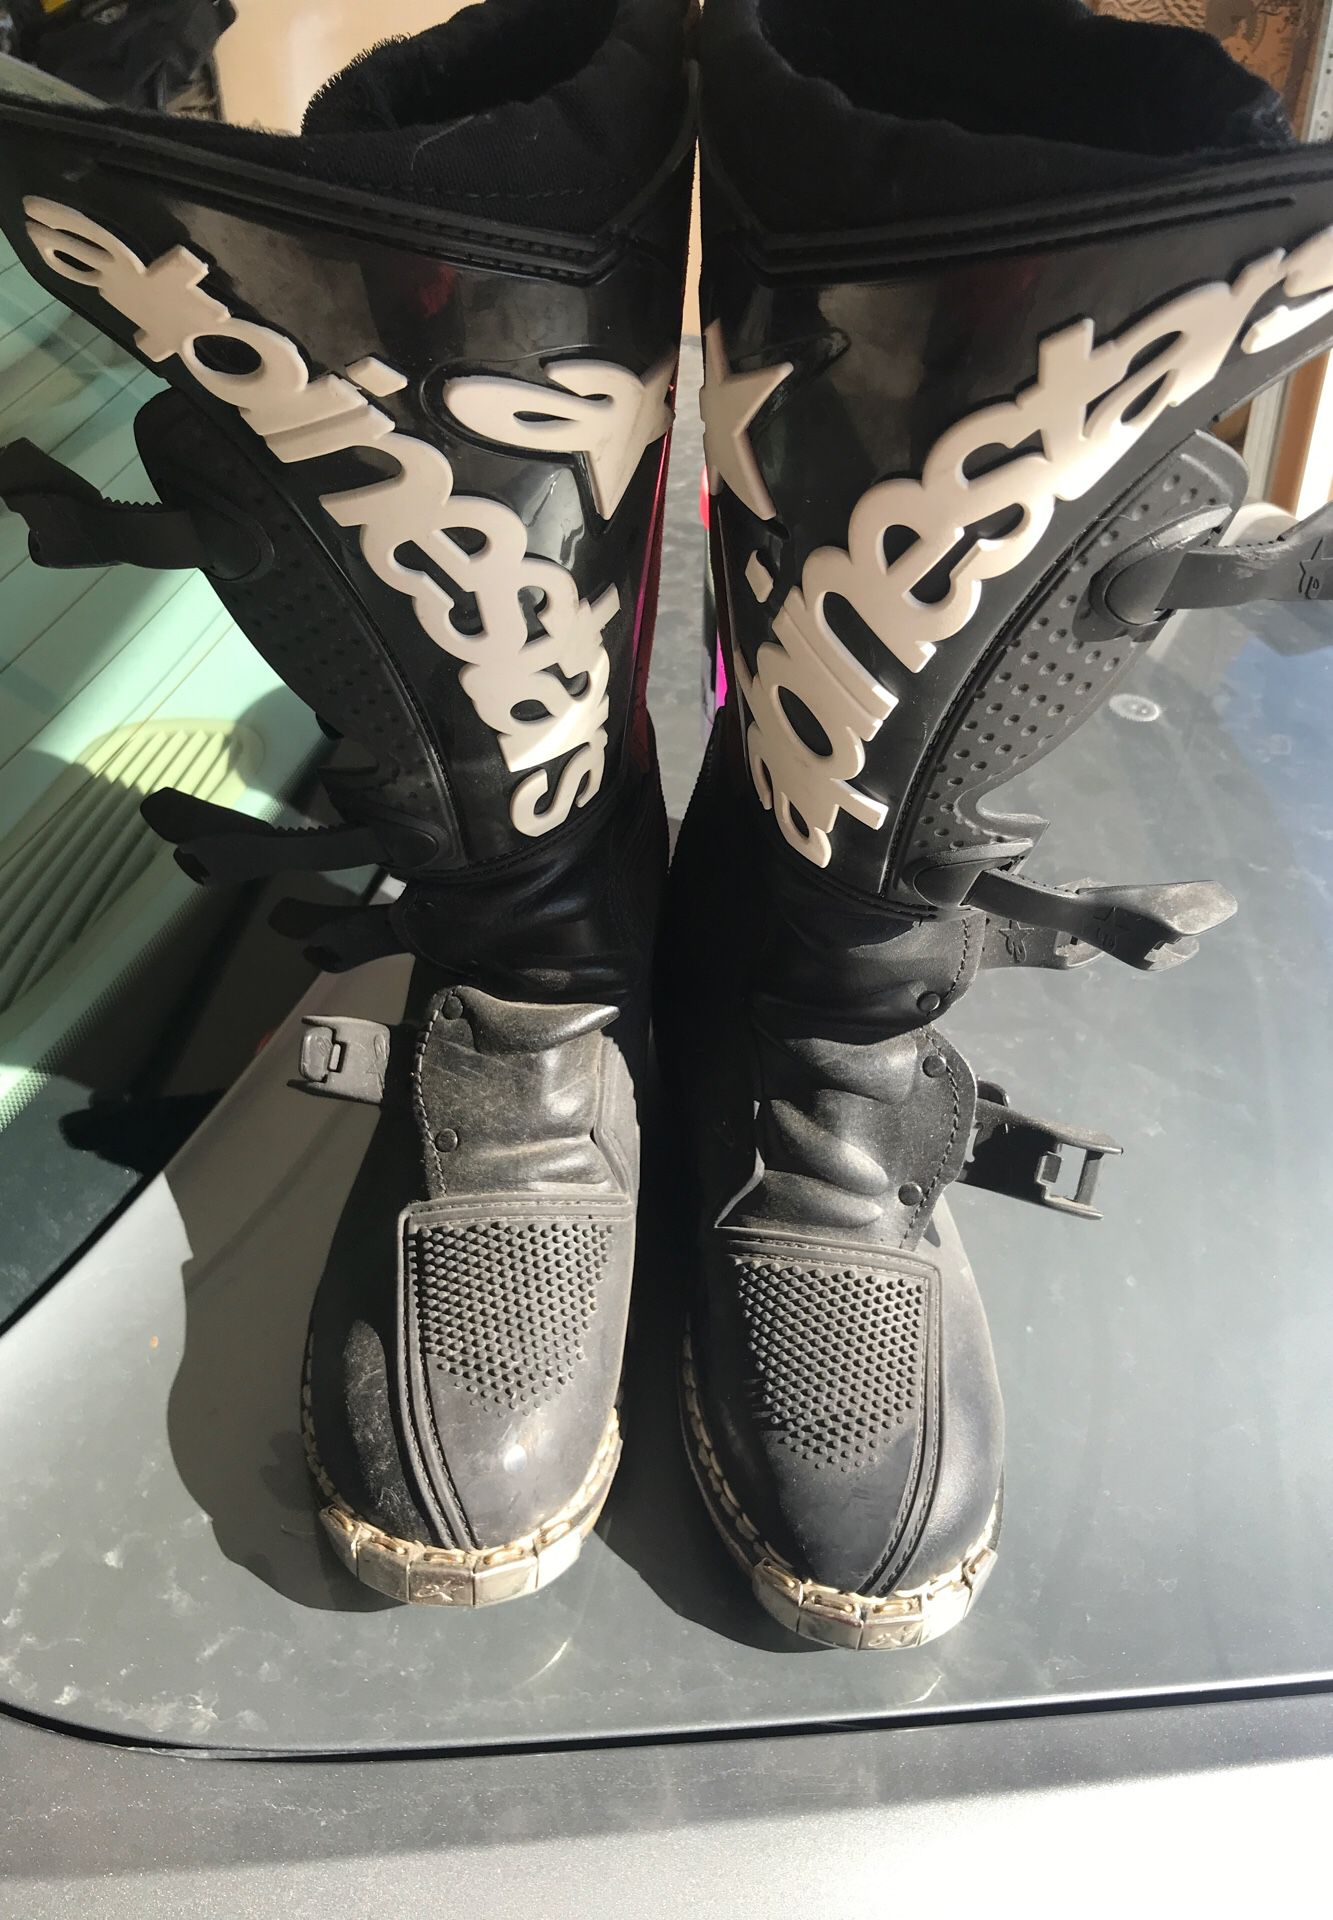 Motocross Boots. Brand new Alpine Star size 7 motocross boots. Mint condition.